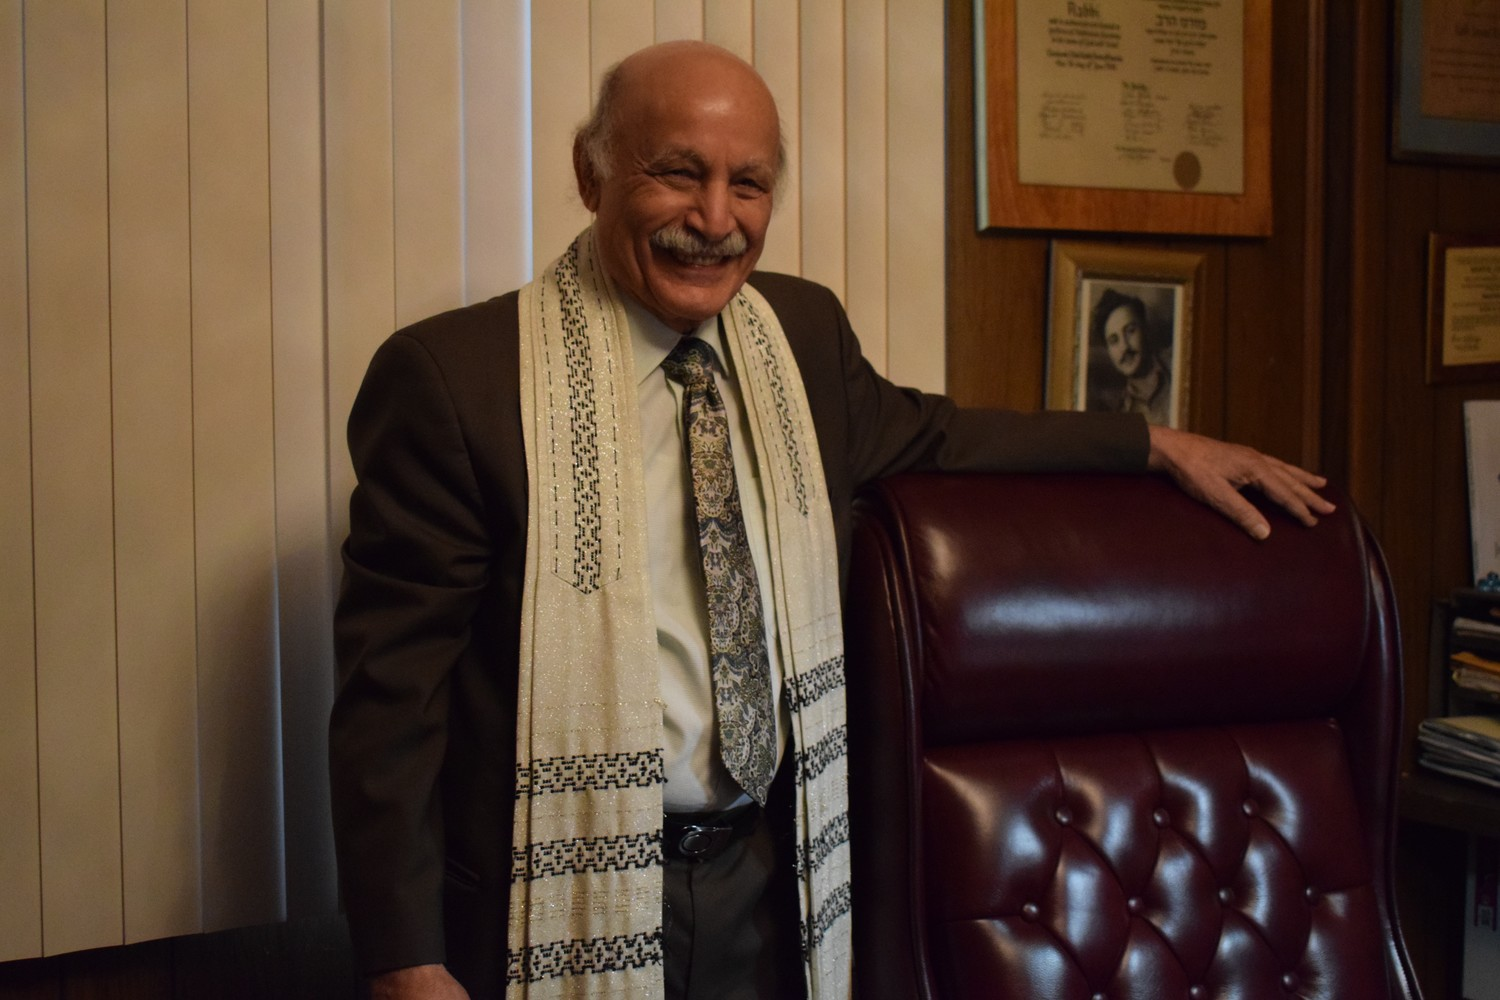 Rabbi Samuel Kehati is the spiritual leader of Temple B'Nai Israel of Elmont.